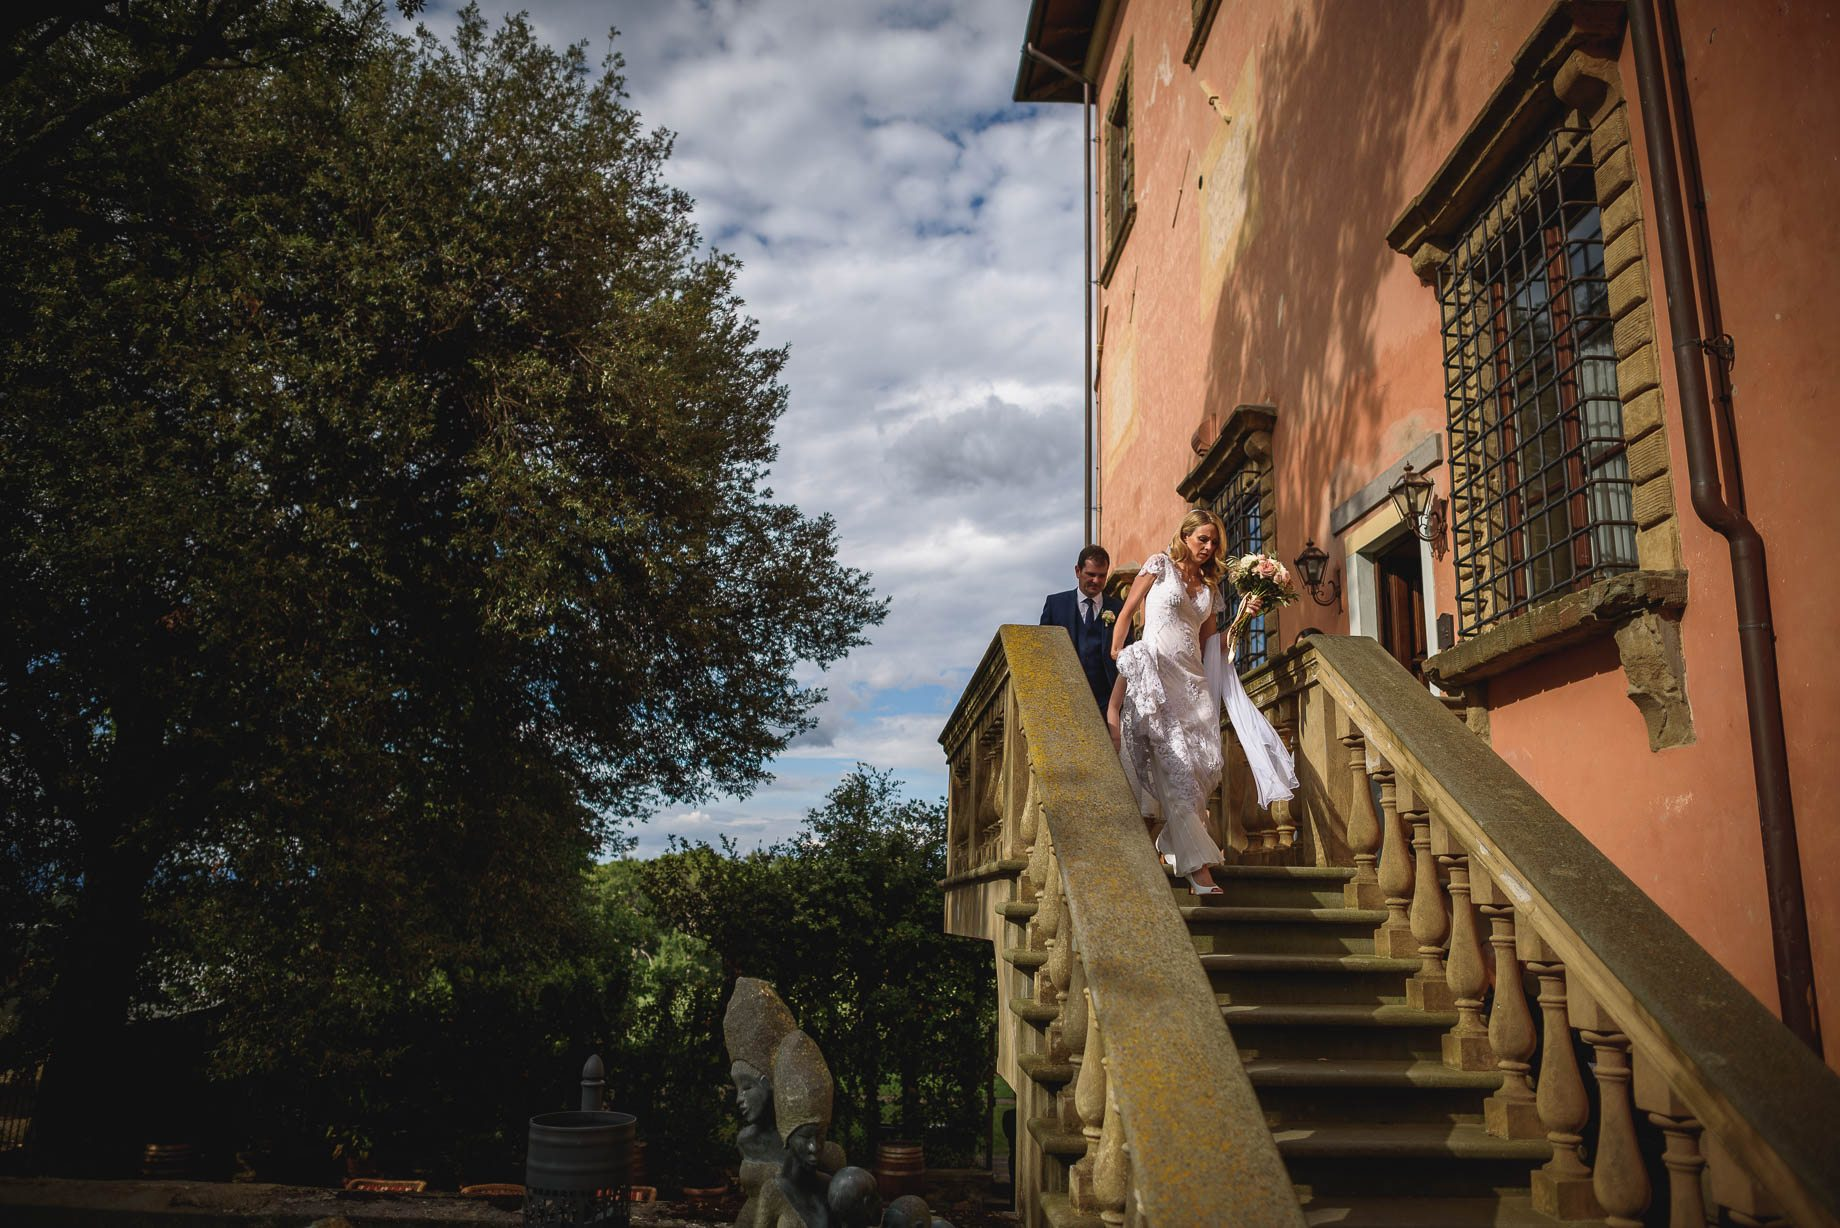 Tuscany wedding photography - Roisin and Moubin - Guy Collier Photography (98 of 251)